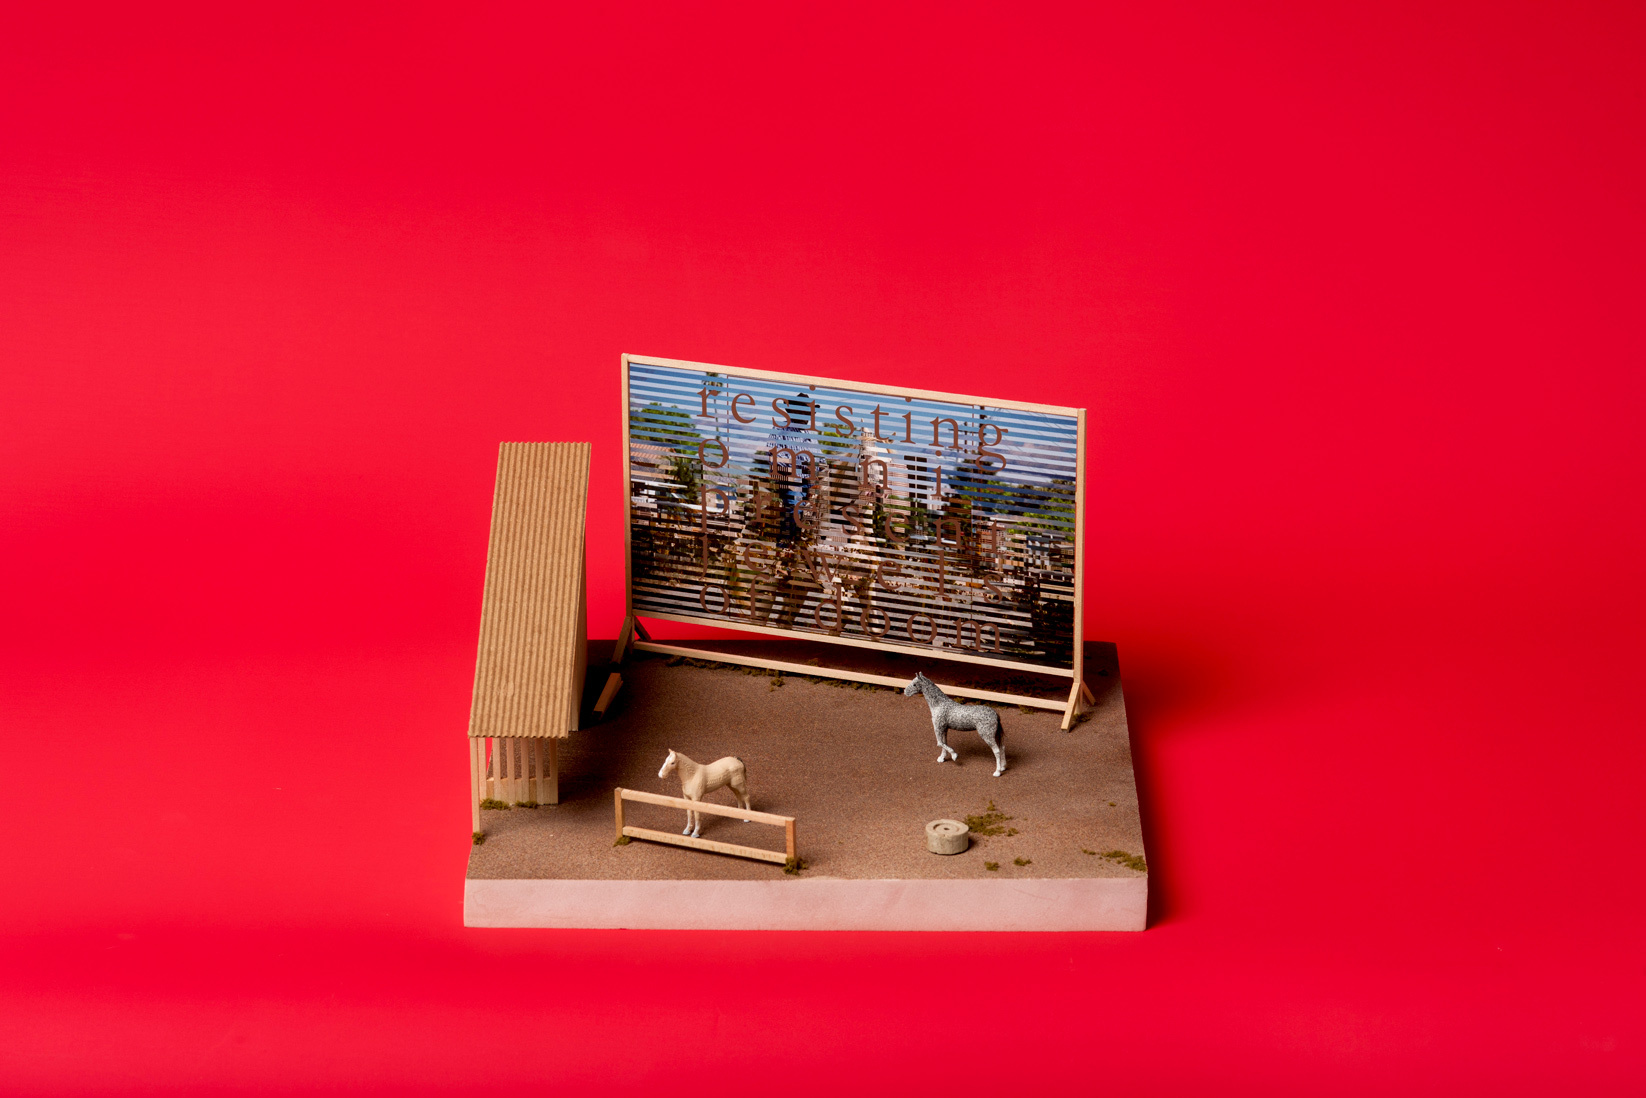 miniature horse stall billboard red background